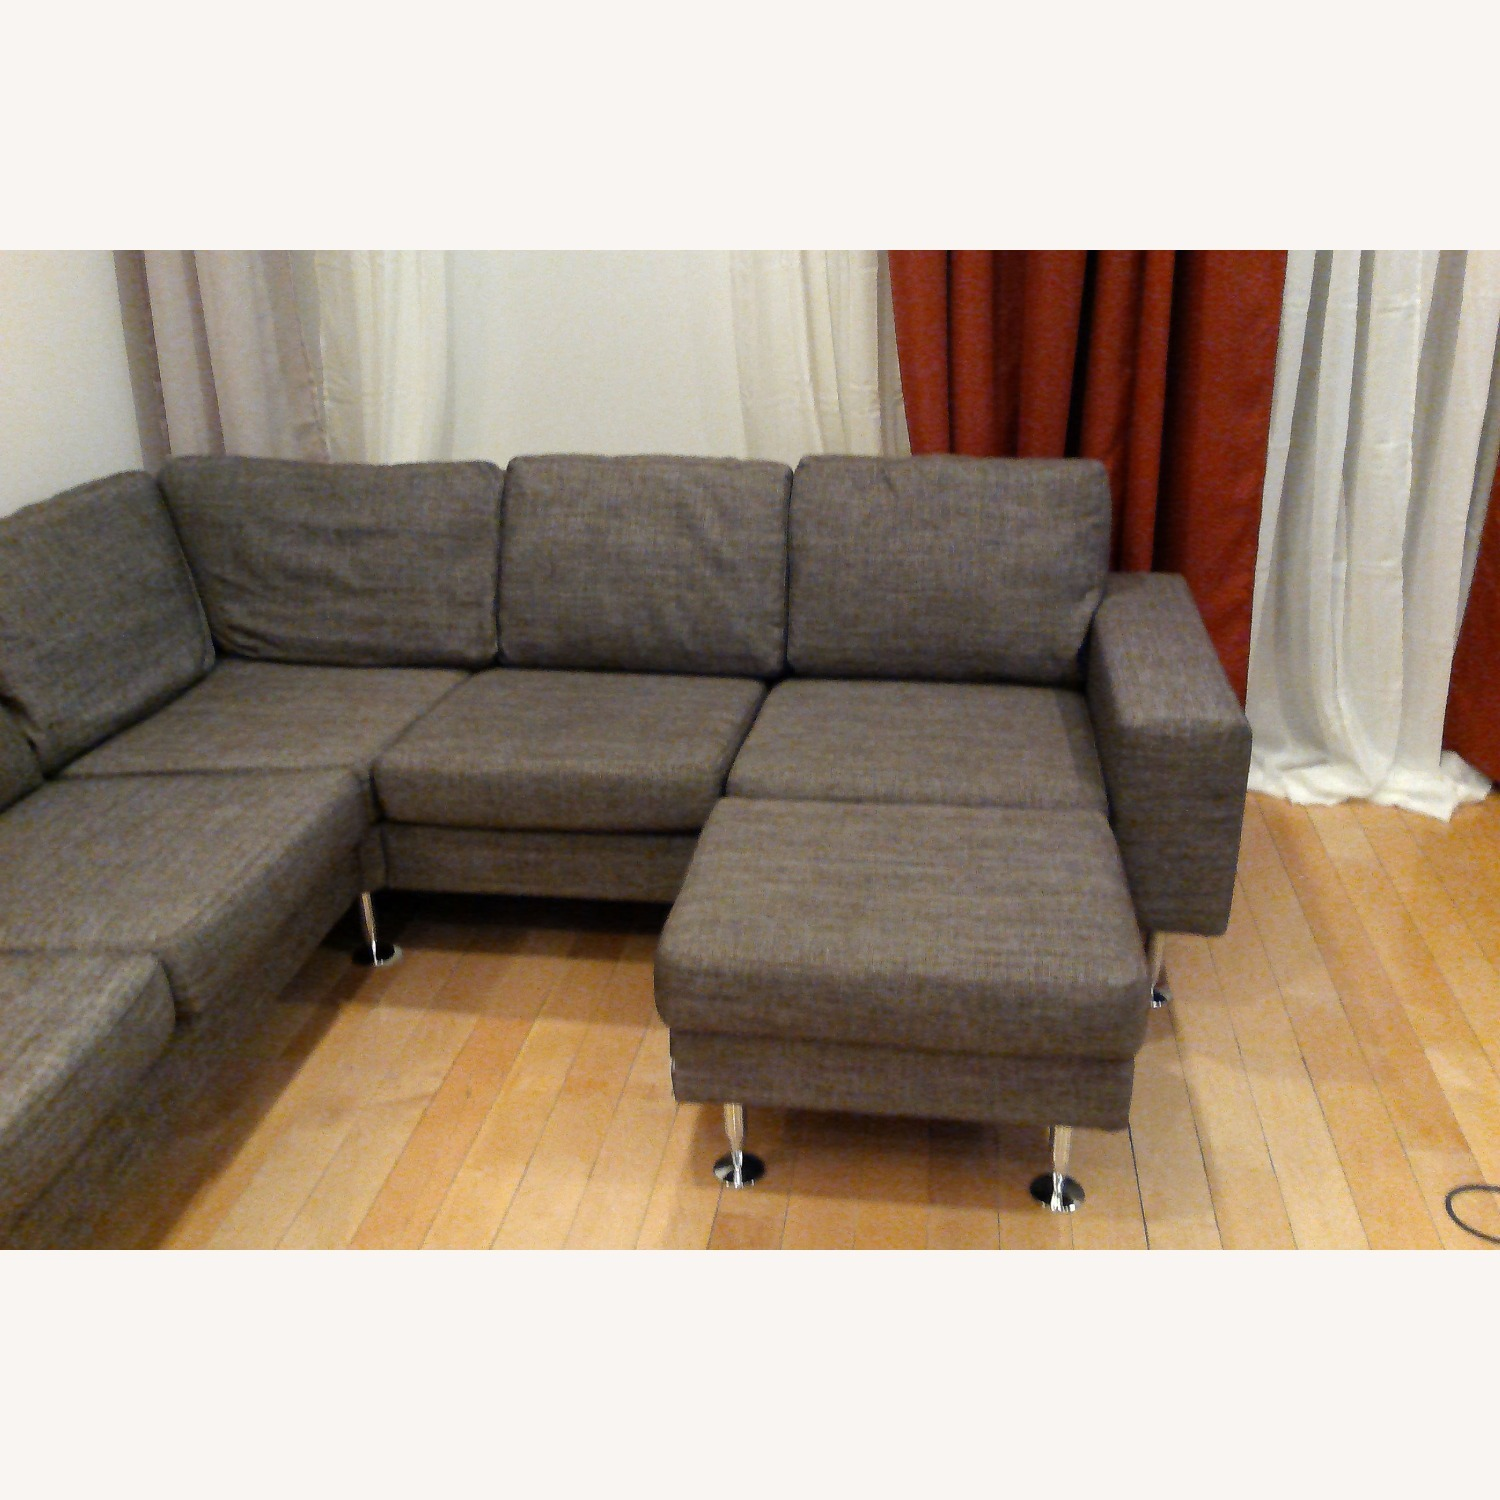 BoConcept 3 Piece Sectional Sofa with Ottoman - image-1